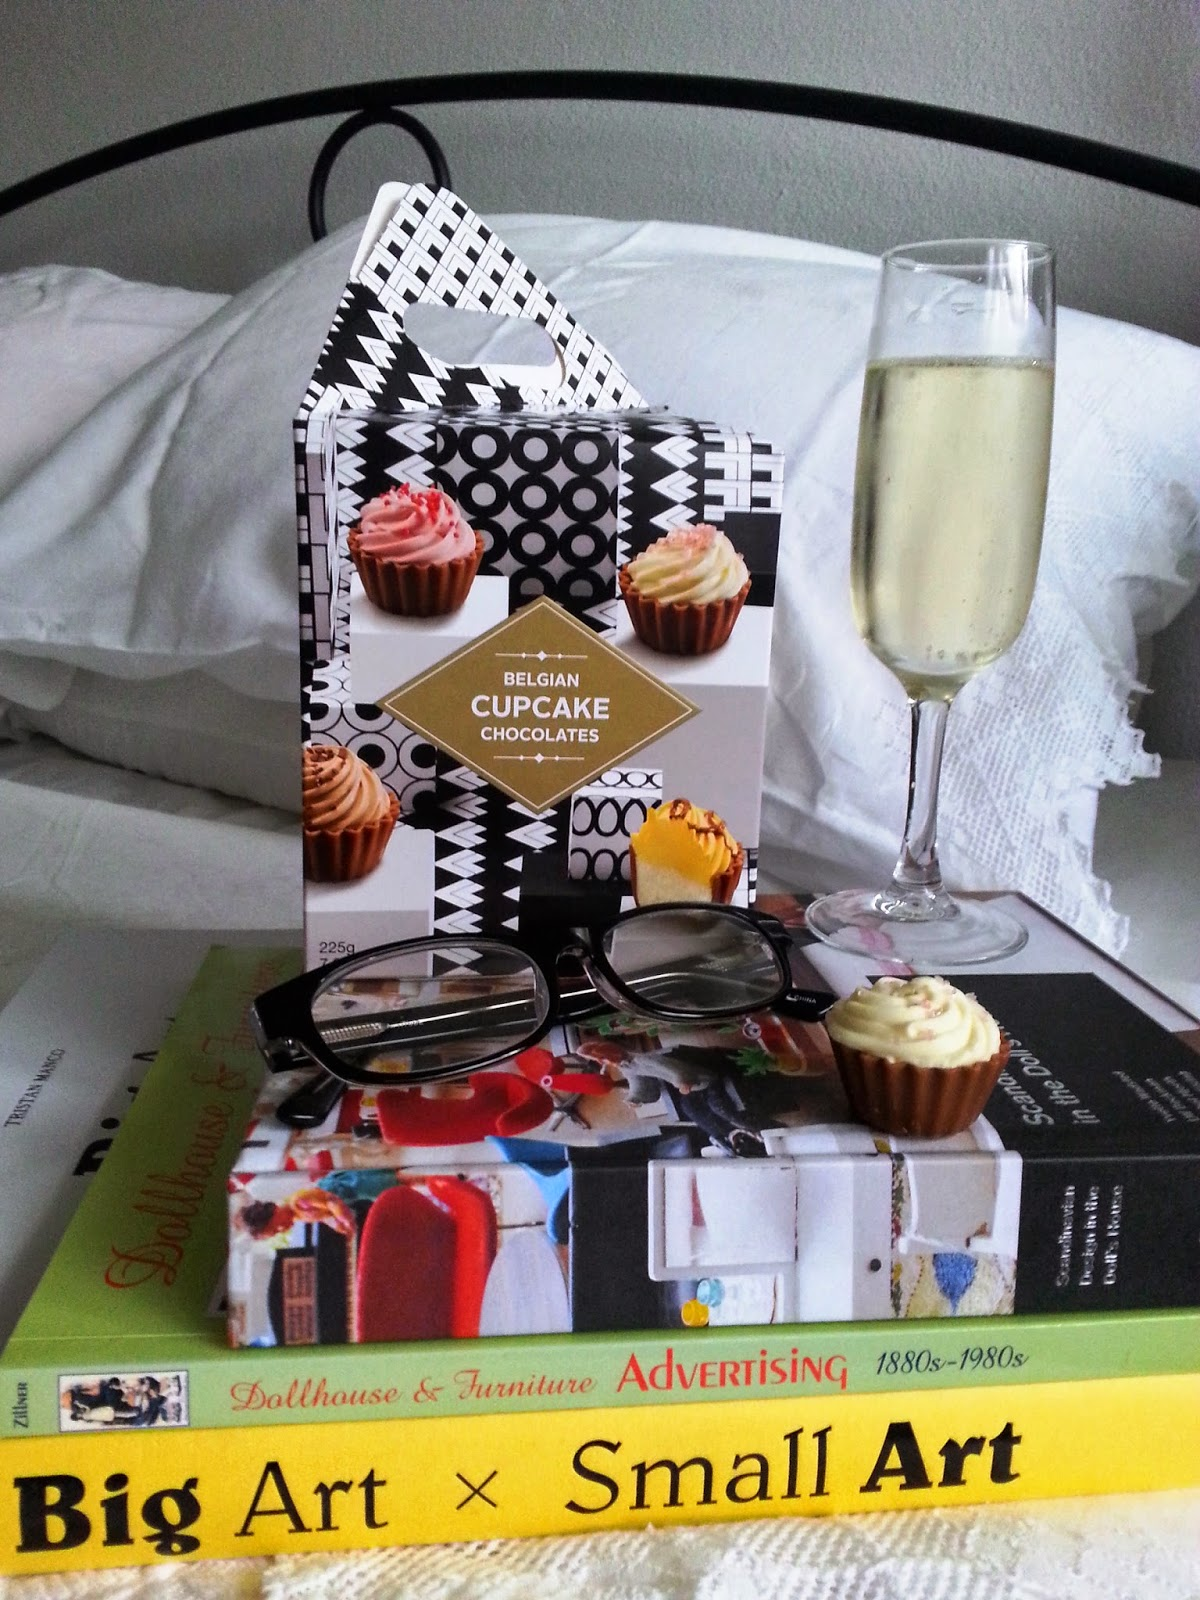 Pile of three books on a bed, with a box of miniature cupcake-shaped chocolates, a pair of reading glasses and a glass of sparkling wine on top.